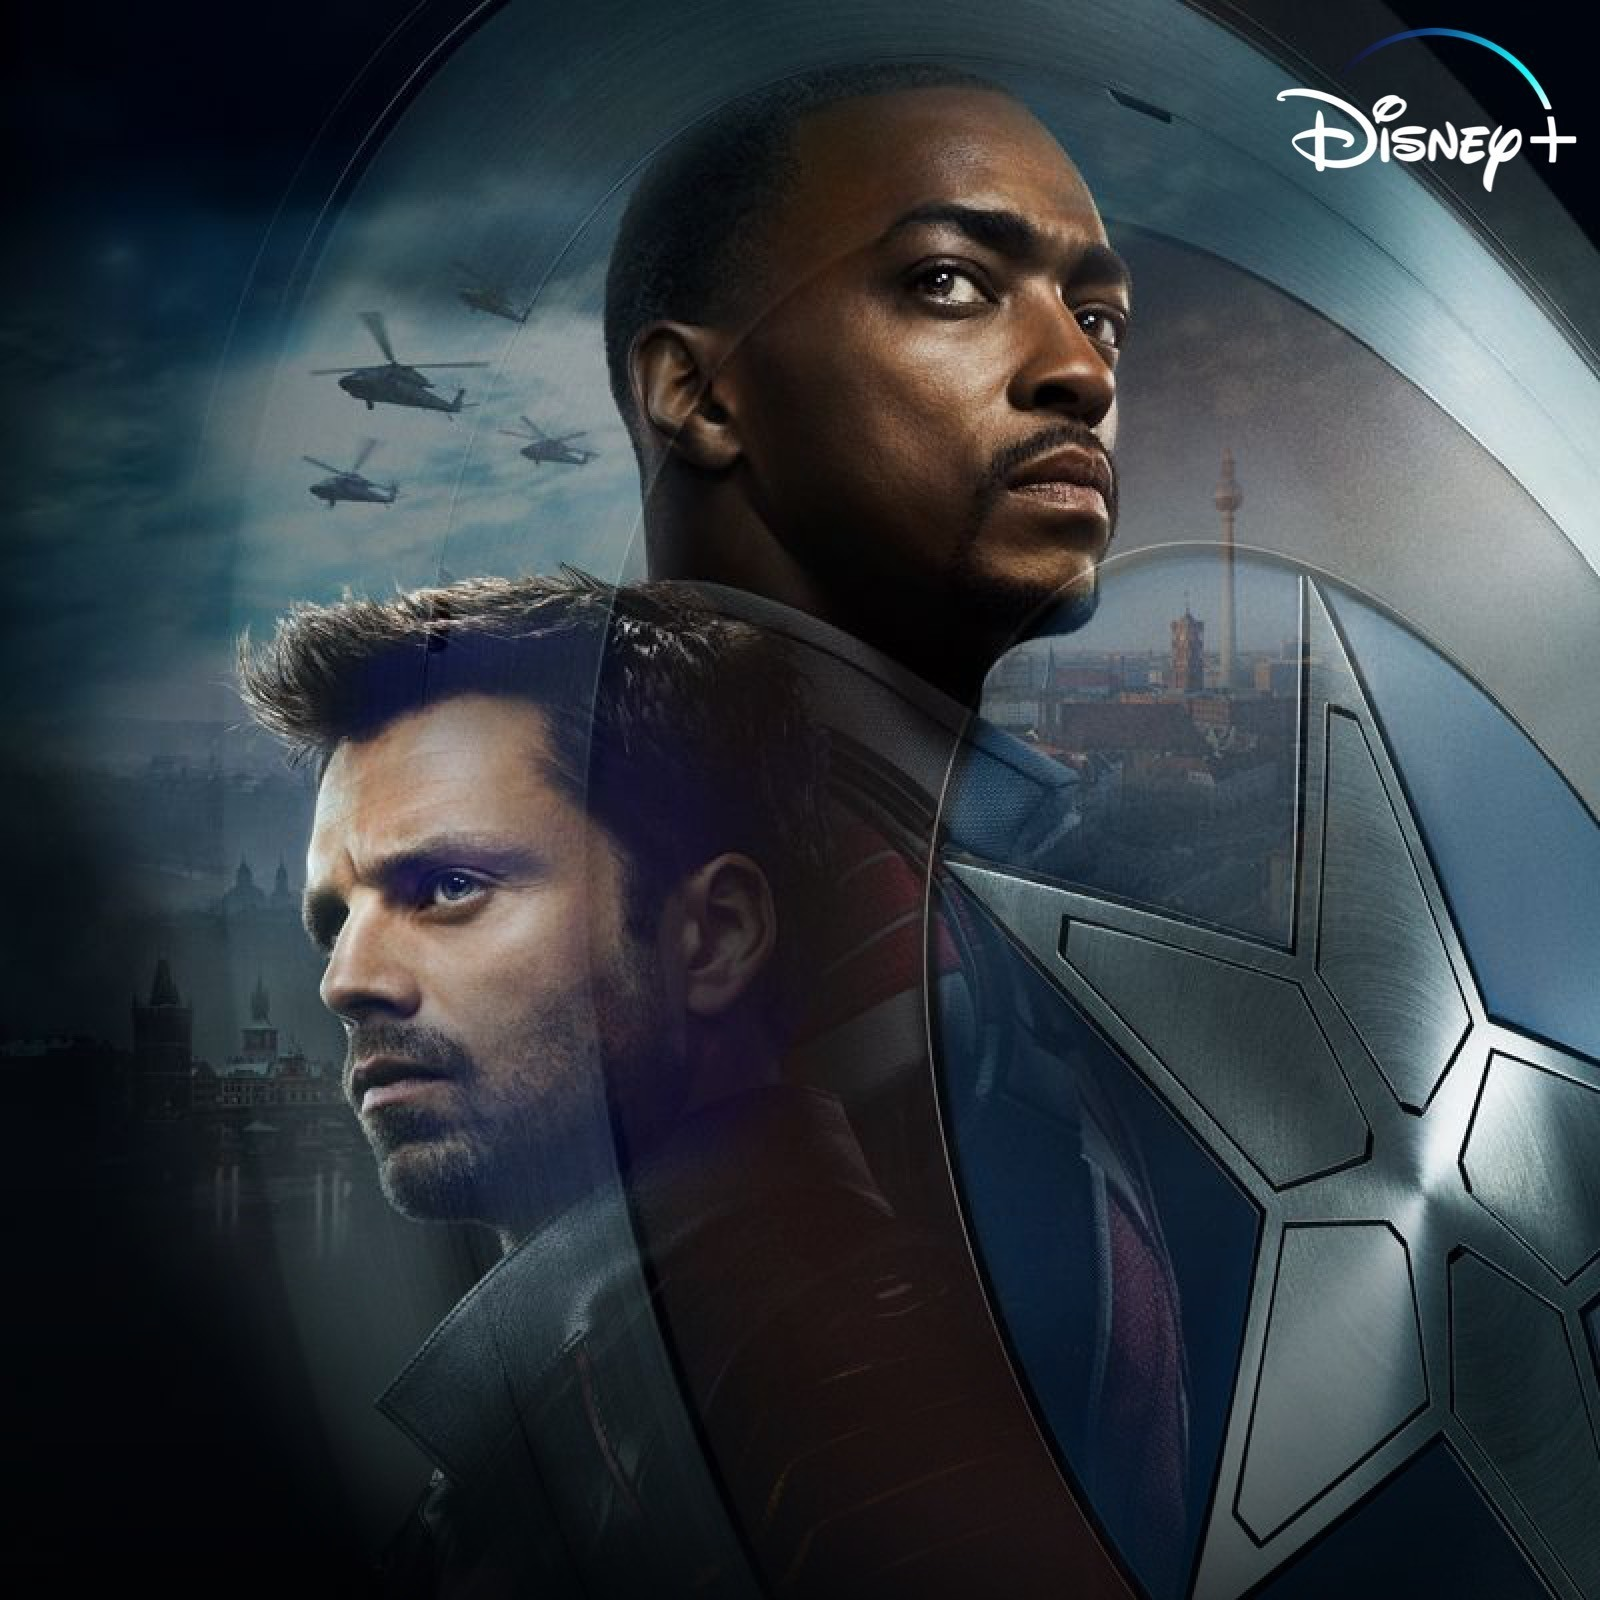 A still image from The Falcon and the Winter Soldier